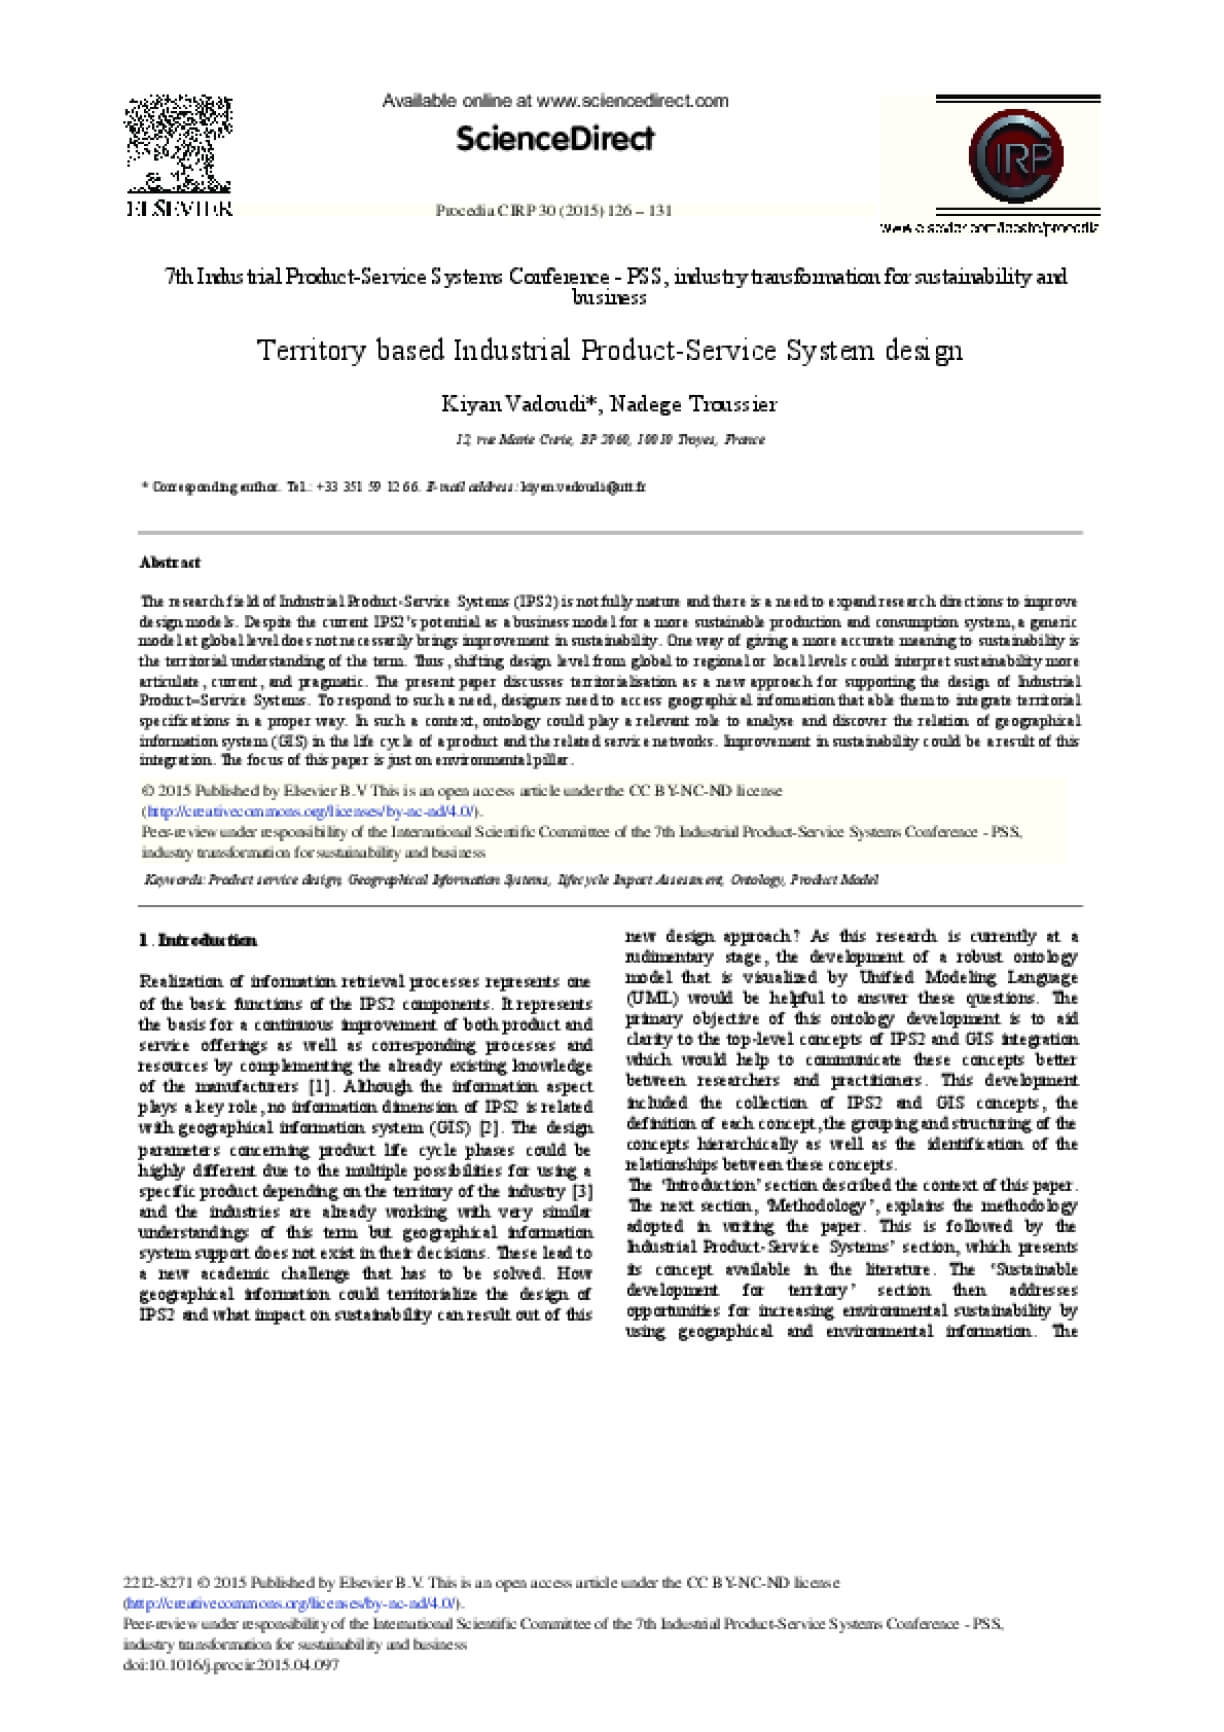 Territory Based Industrial Product-Service System Design